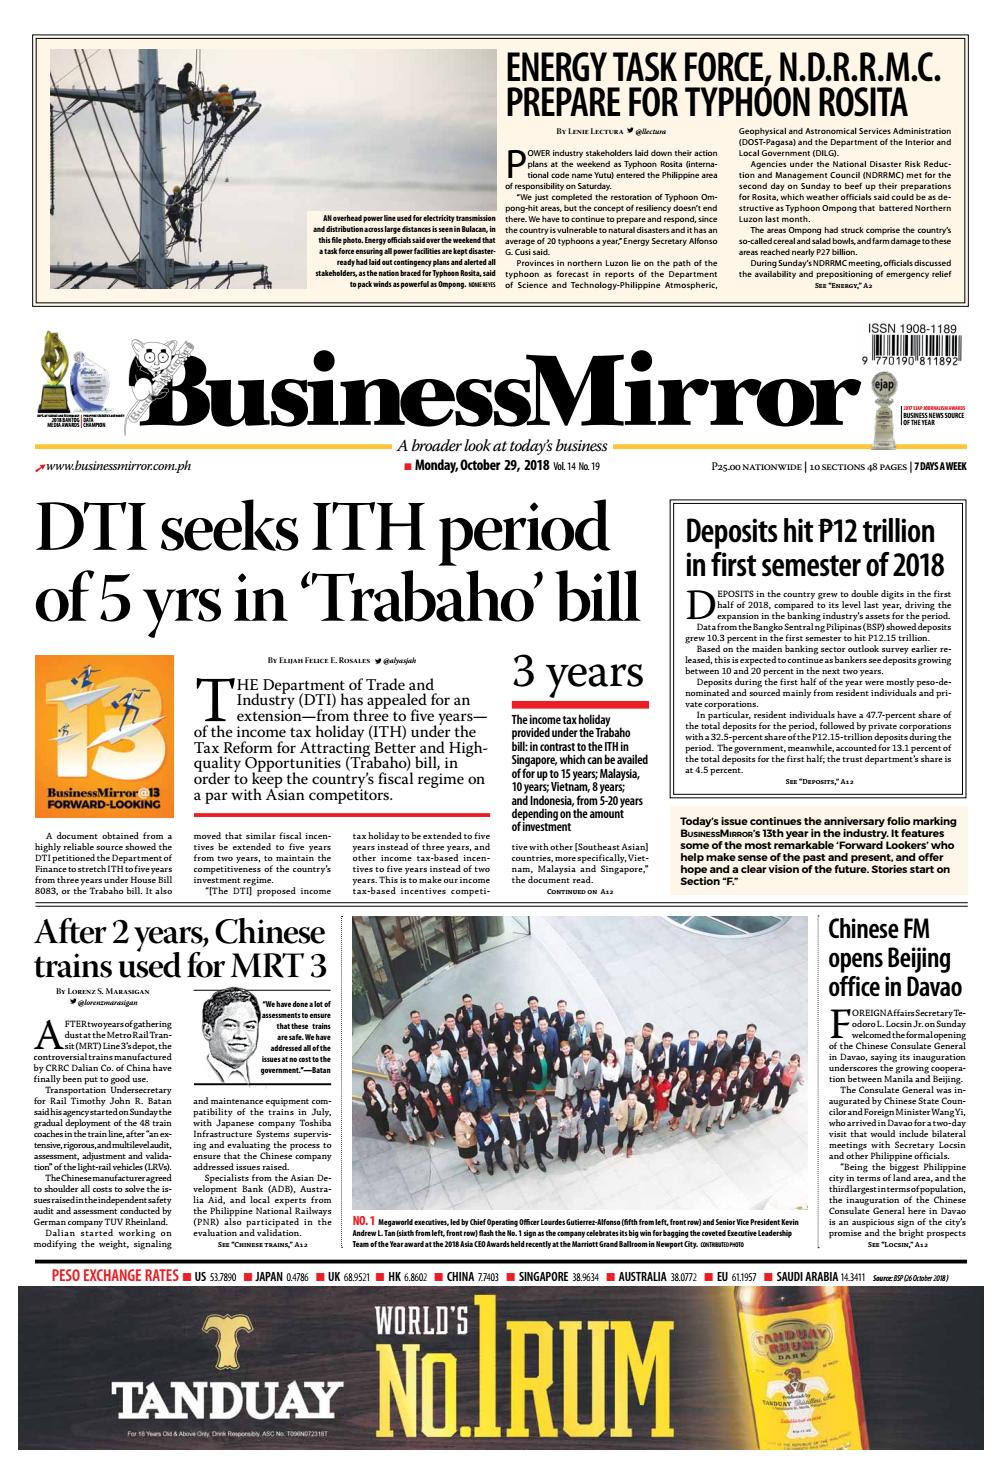 BusinessMirror October 29, 2018 by BusinessMirror - issuu